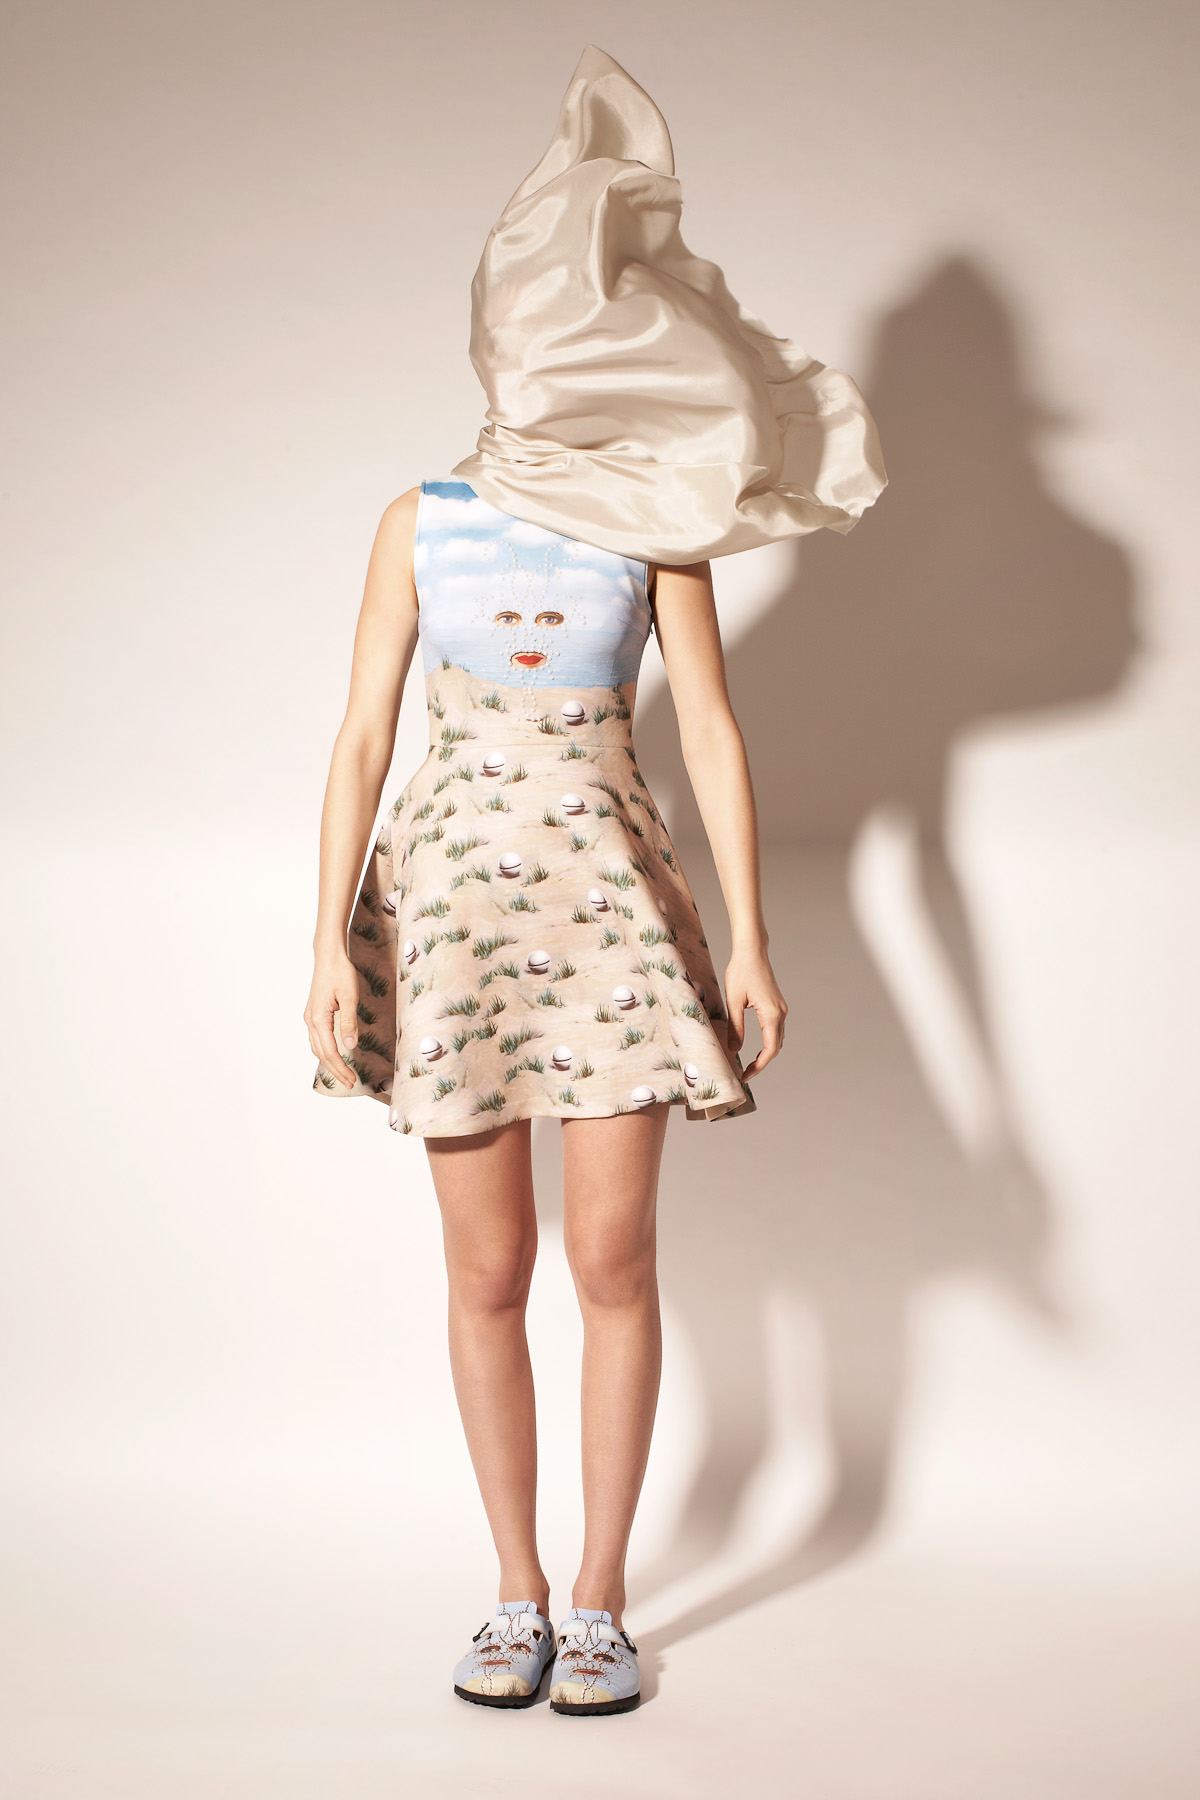 OPENING CEREMONY & MAGRITTE SHEHERAZADE SLEEVELESS FLARE DRESS - WOMEN - OPENING CEREMONY & MAGRITTE